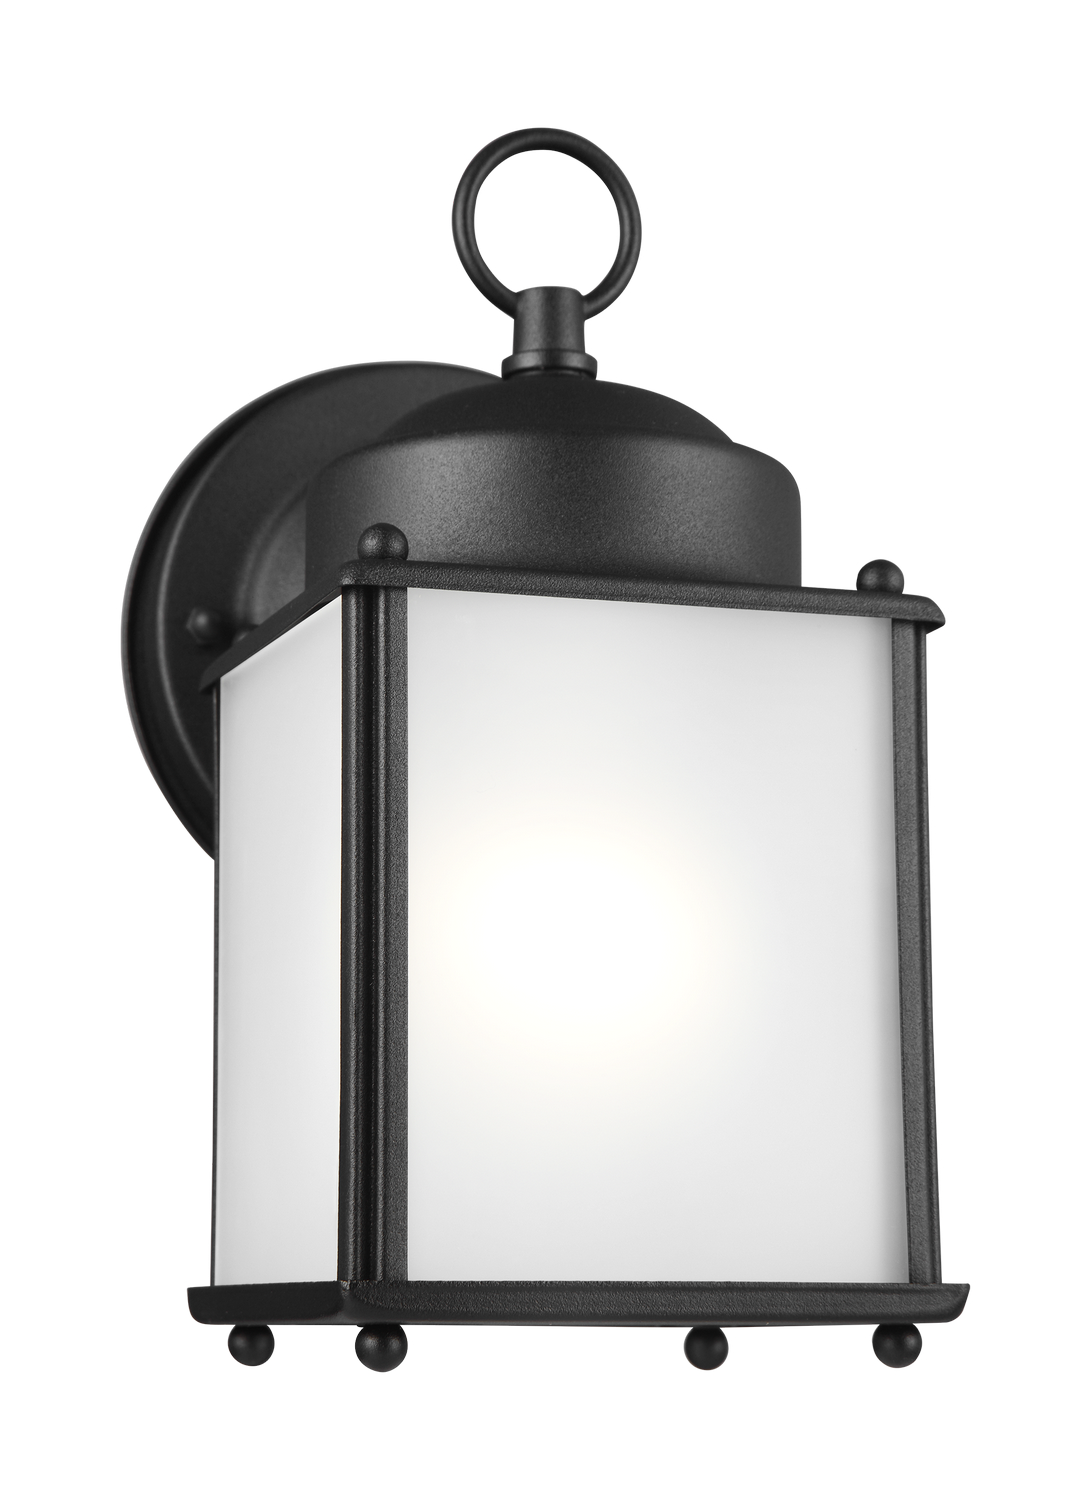 One Light Outdoor Wall Lantern From The New Castle Collection By Seagull 8592001en3 12